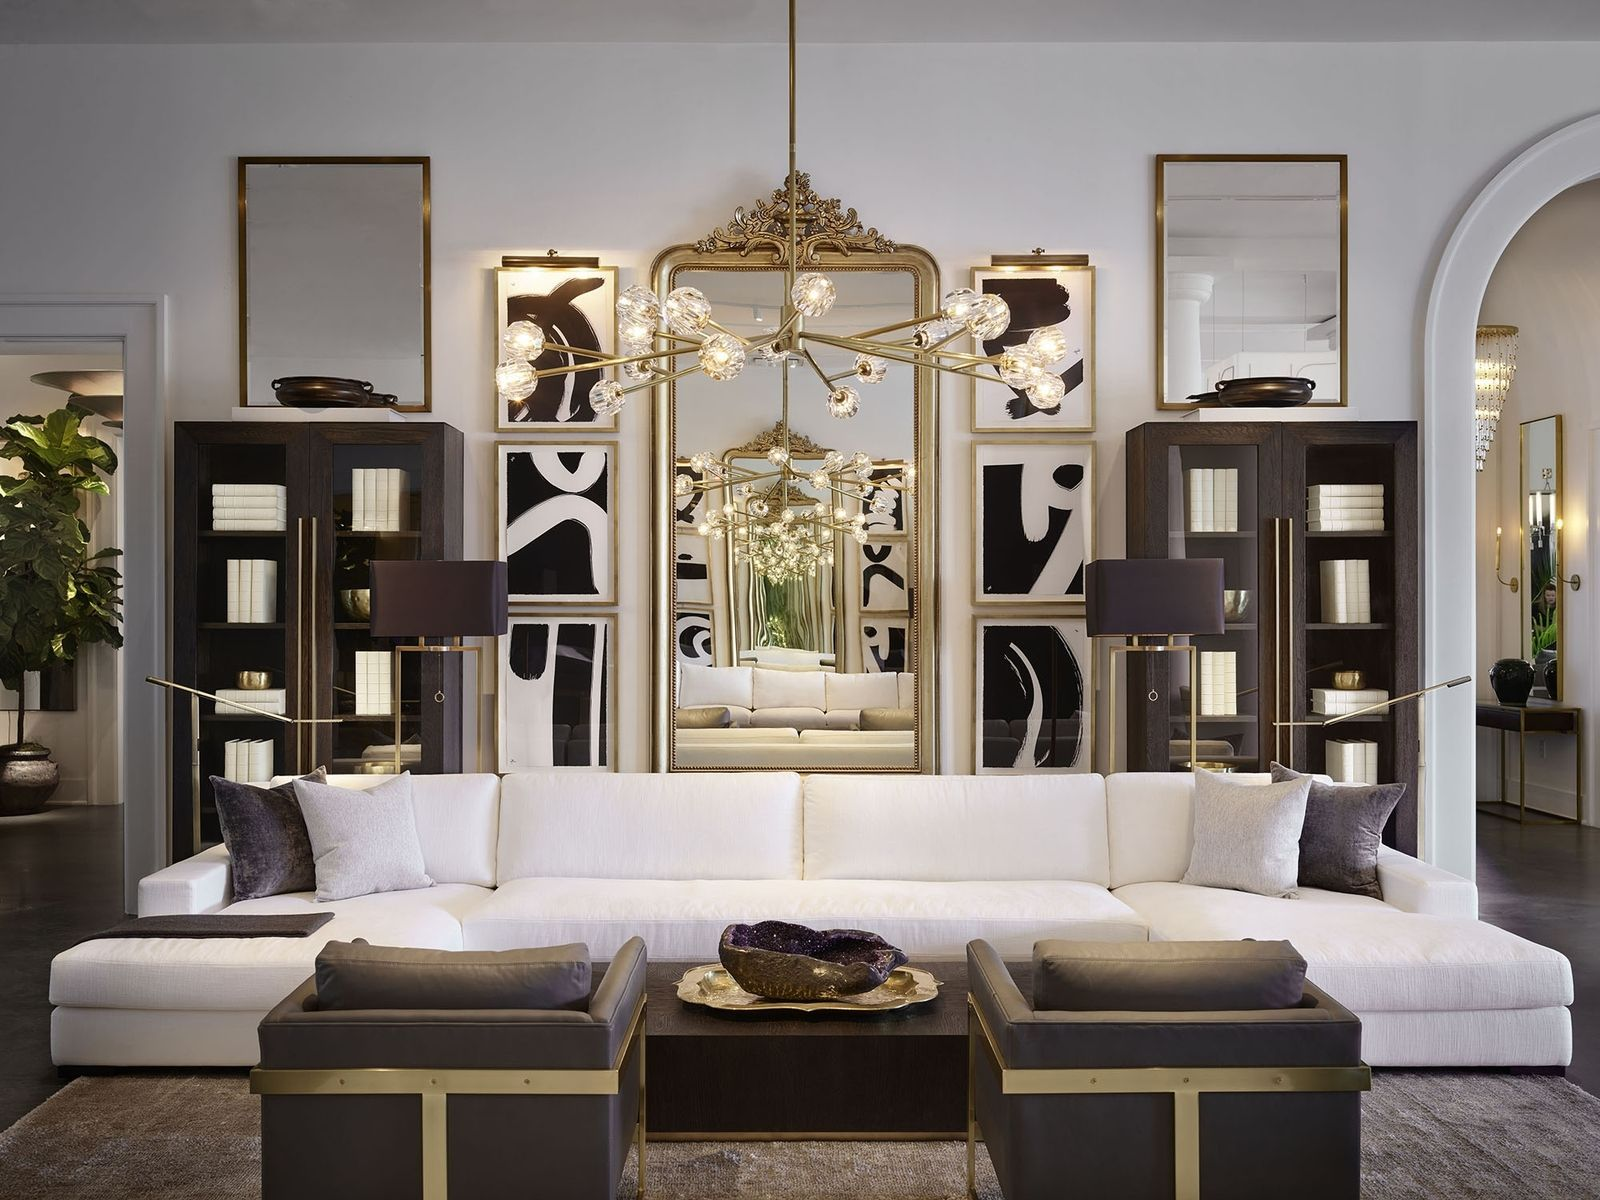 Restoration Hardware Just Opened A Mansion In Palm Beach